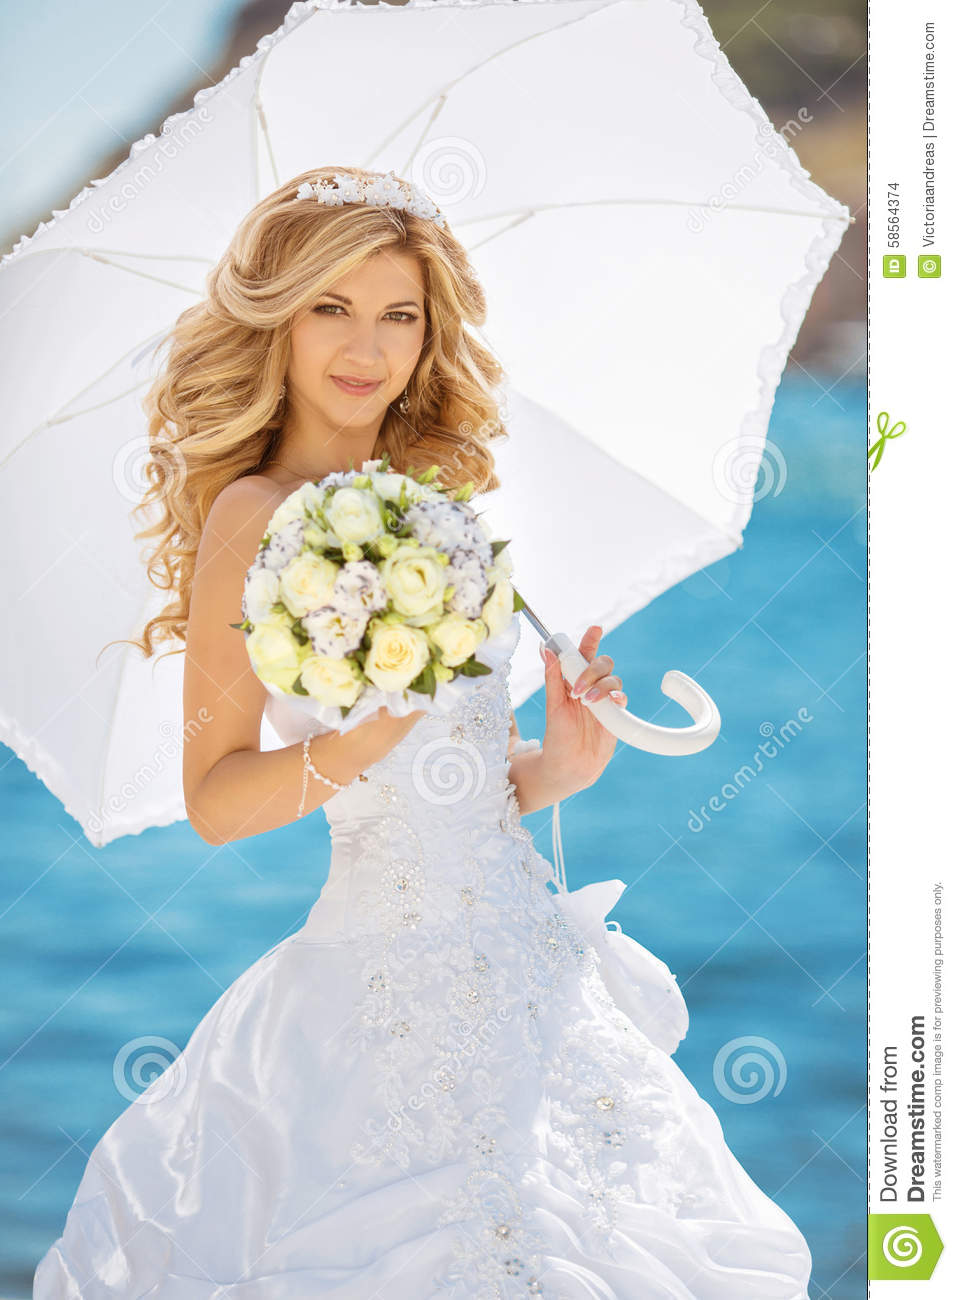 00fb3f5056 Beautiful bride in wedding dress with white umbrella and bouquet of flowers